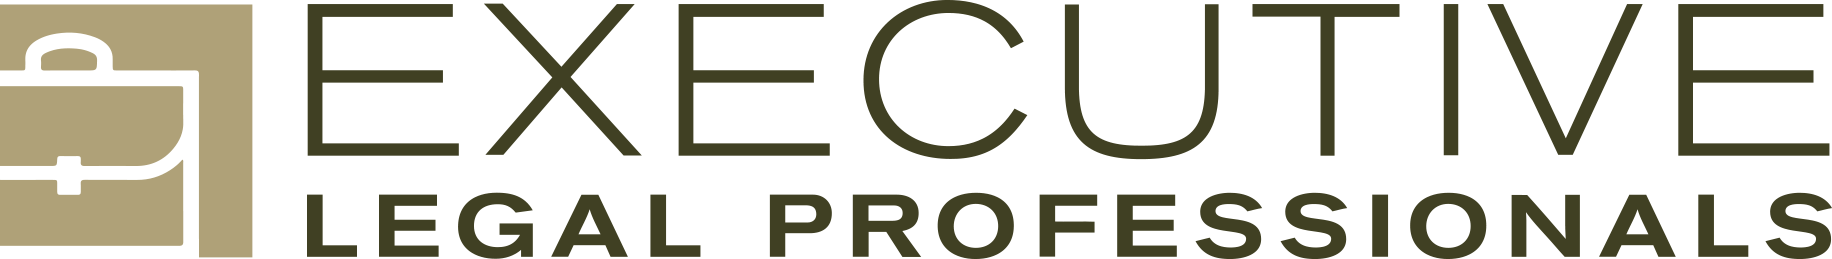 Executive-Legal-Professionals-Logo